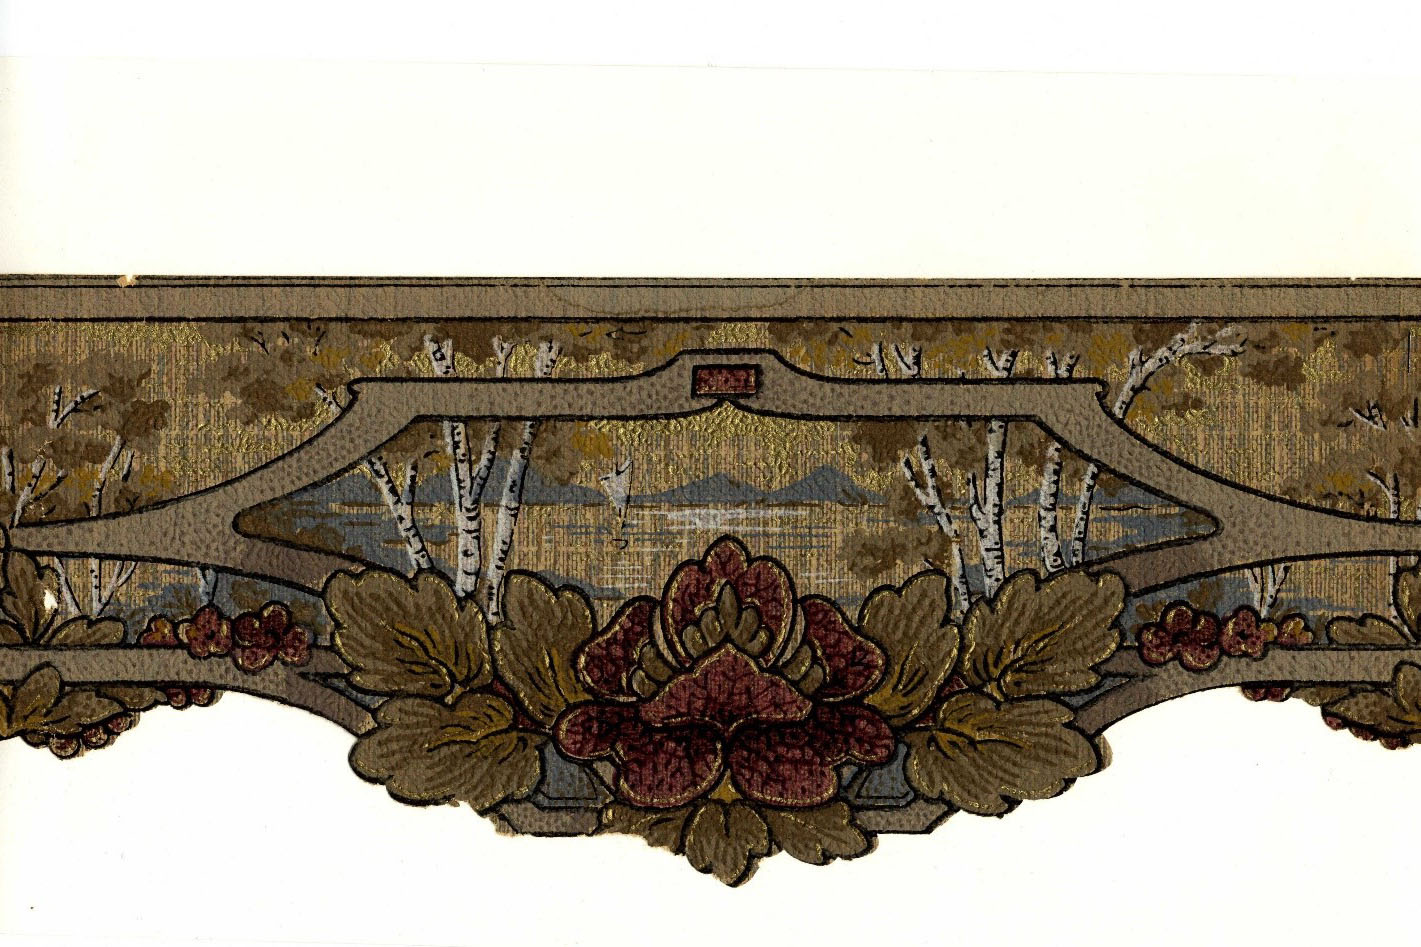 Vintage Wallpaper Samples: In 1997, NYSID's Librarian Jean Hines acquired more than 70 vintage wallpaper samples from the Metropolitan Book Auction to serve as a study collection for students. The samples, now safely housed in the Archives and available for research, range in style from the Neoclassical, to Arts and Crafts and to Art Deco. Pictured is a frieze of an outdoor scene (complete with Birch or Aspen) and framed with flowers. Beautiful!